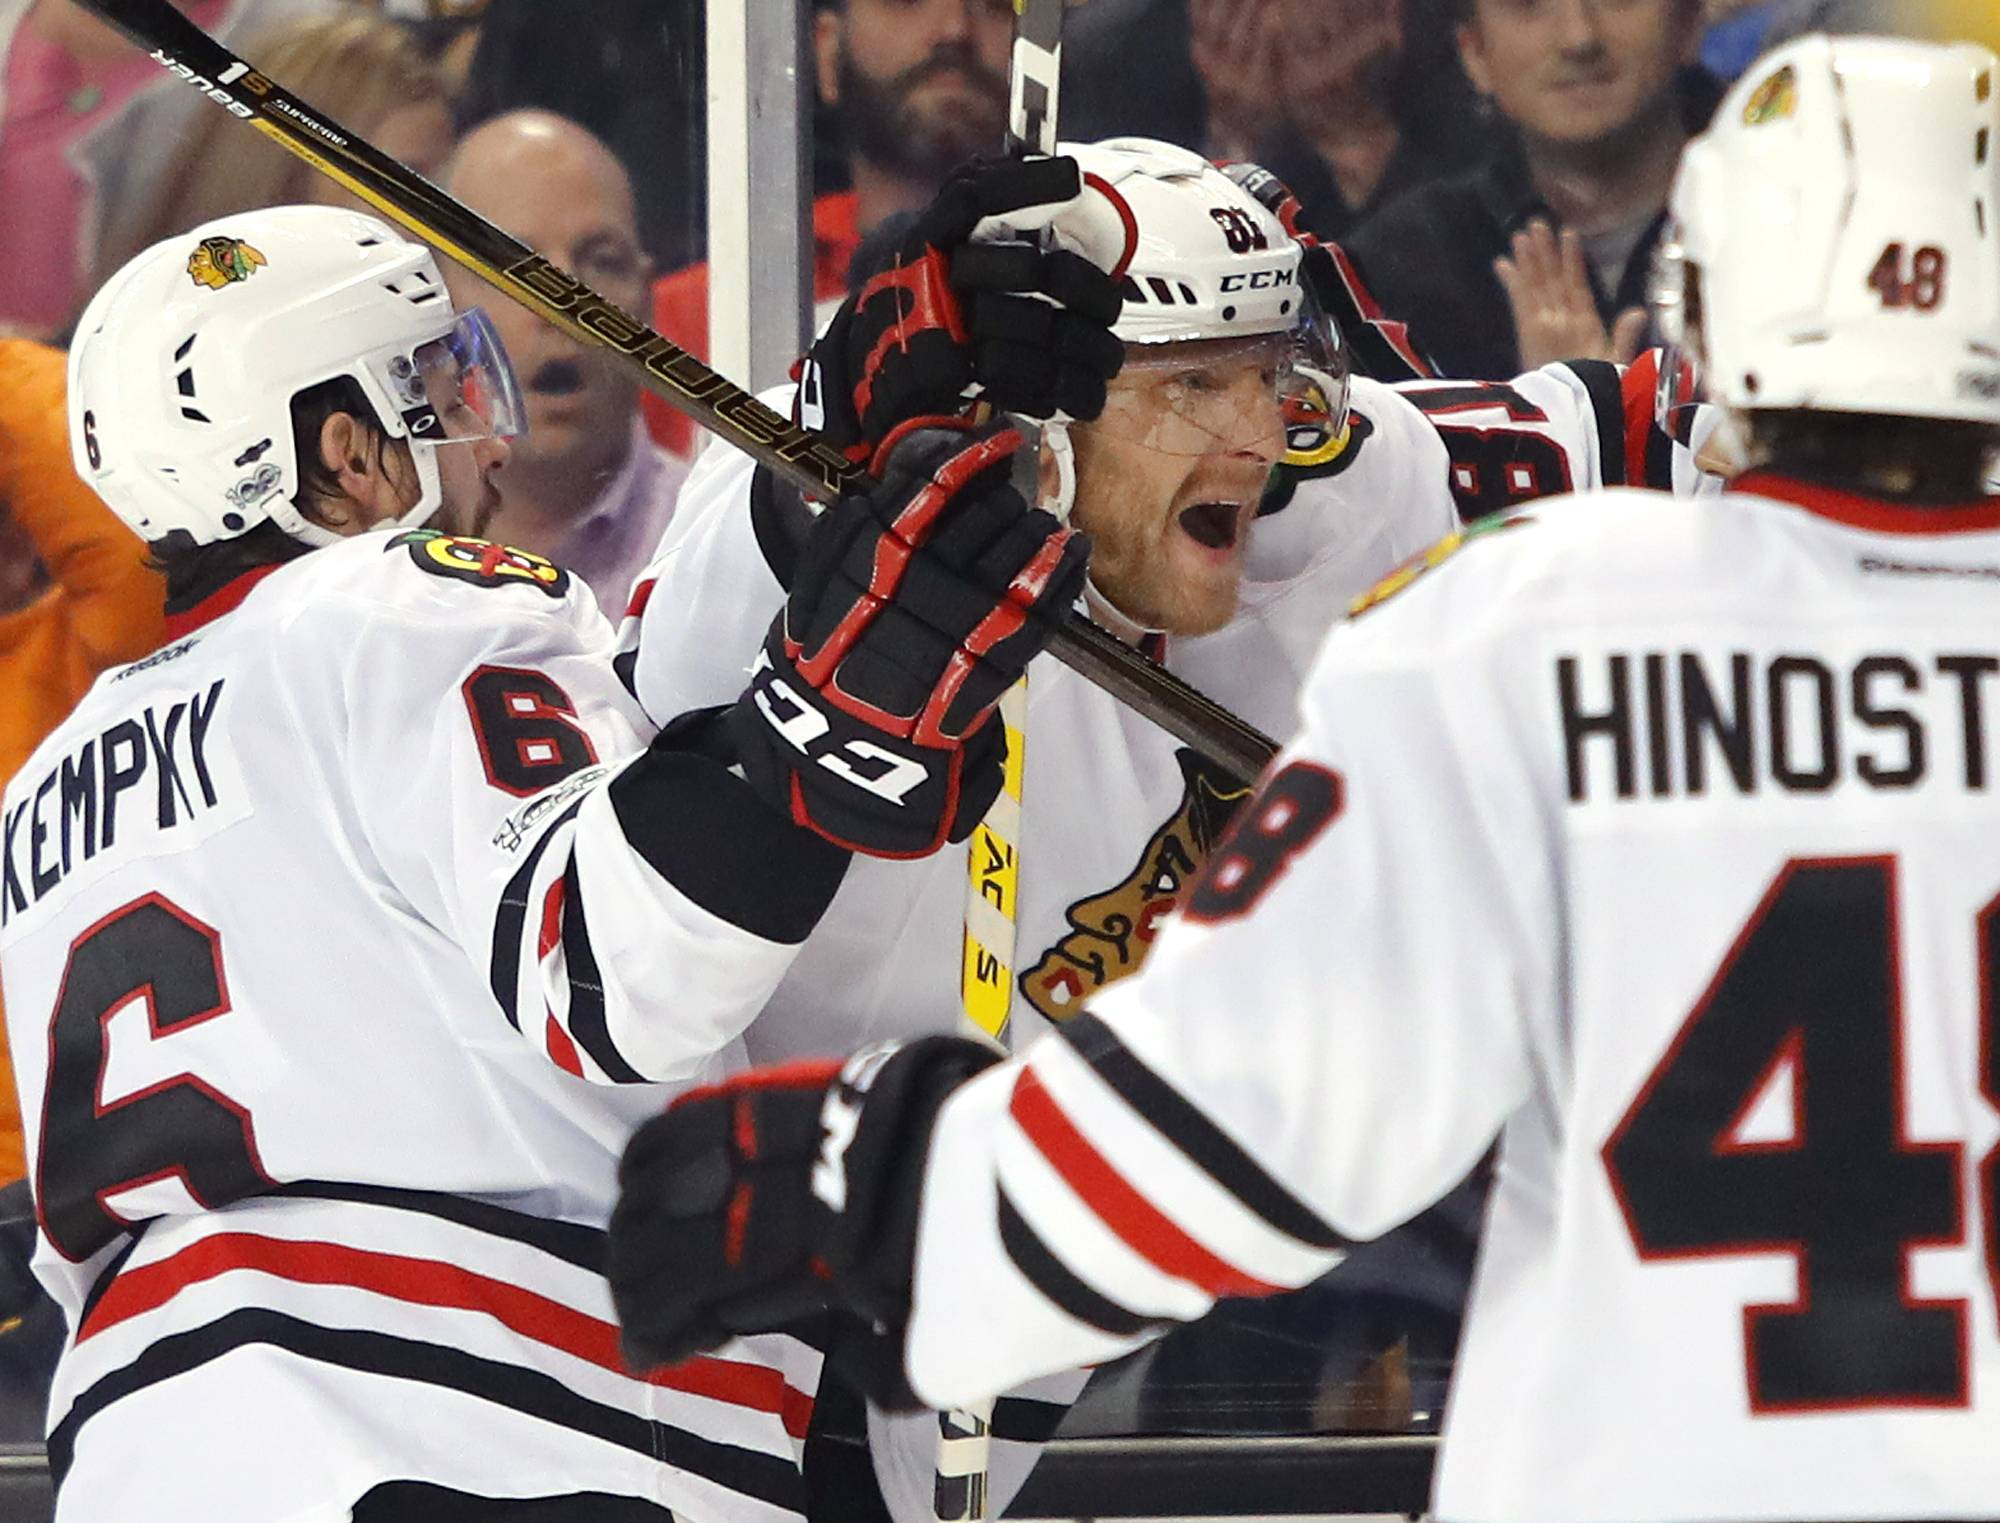 Chicago Blackhawks' Marian Hossa, center, celebrates his goal with Vinnie Hinostroza and Michal Kempny (6) during the third period of the Chicago Blackhawks 1-0 win over the Boston Bruins in an NHL hockey game in Boston Friday, Jan. 20, 2017.